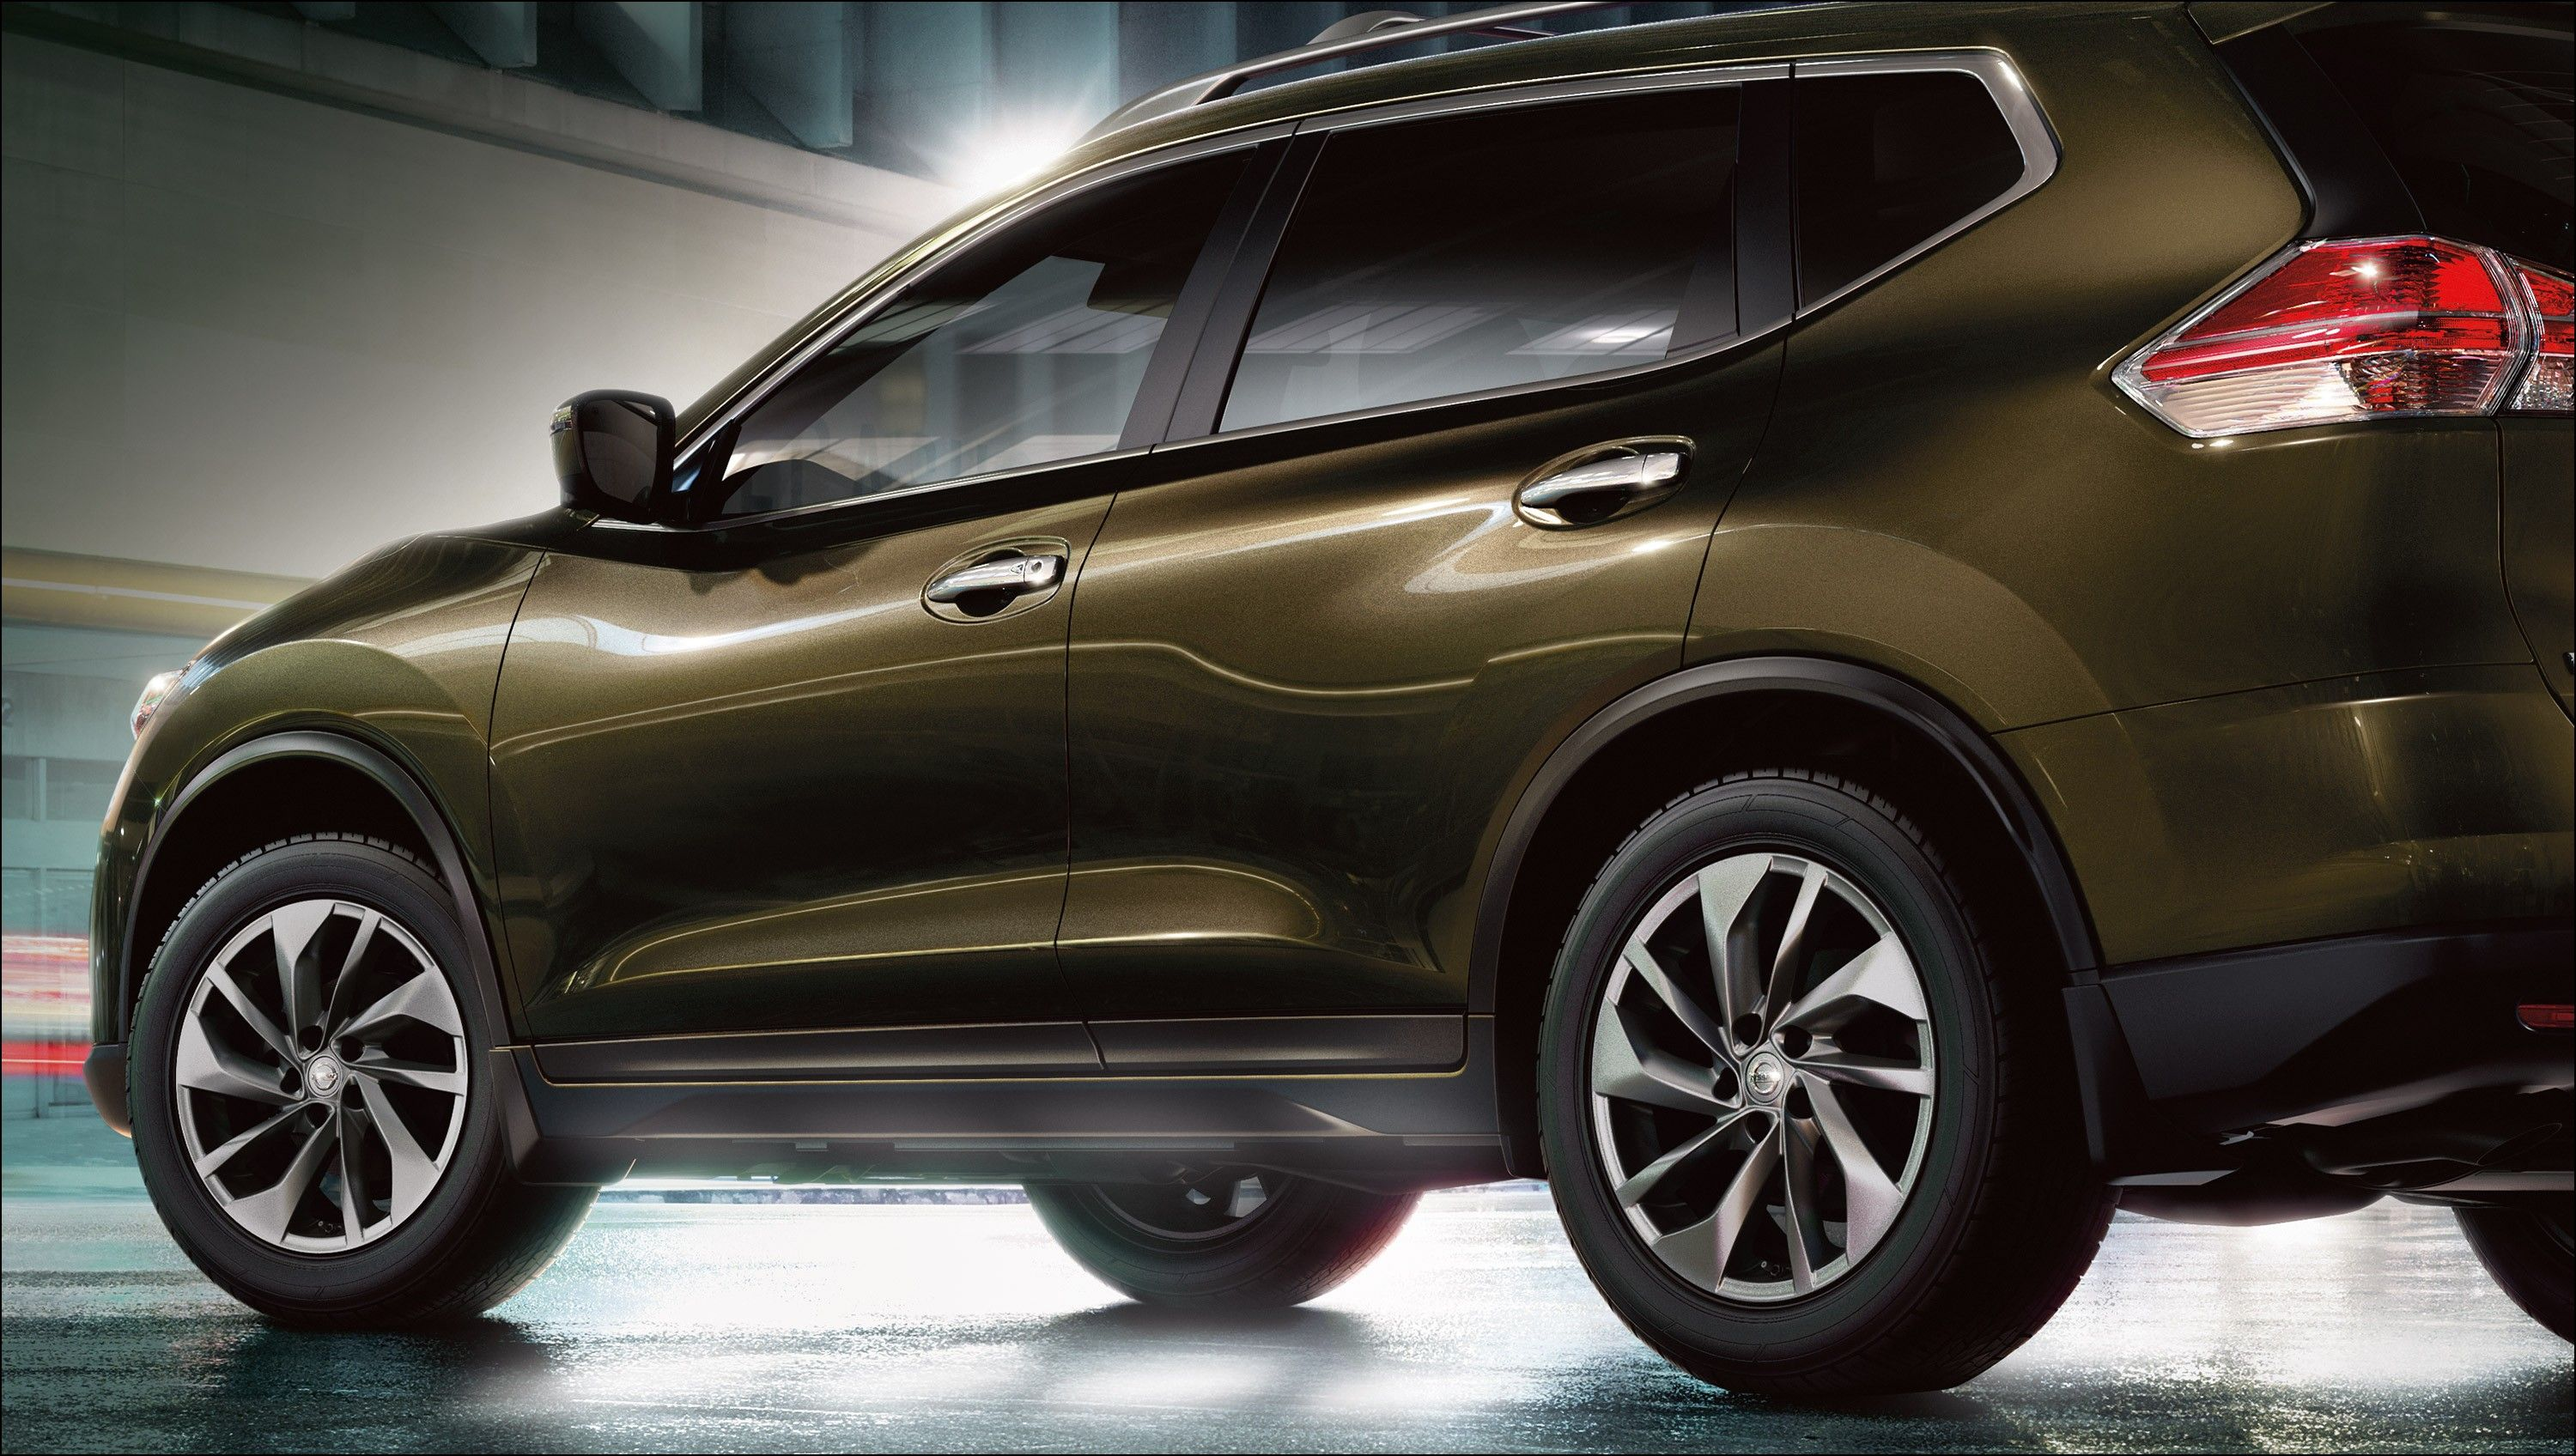 Best Tires for Nissan Rogue Nissan rogue, Best family